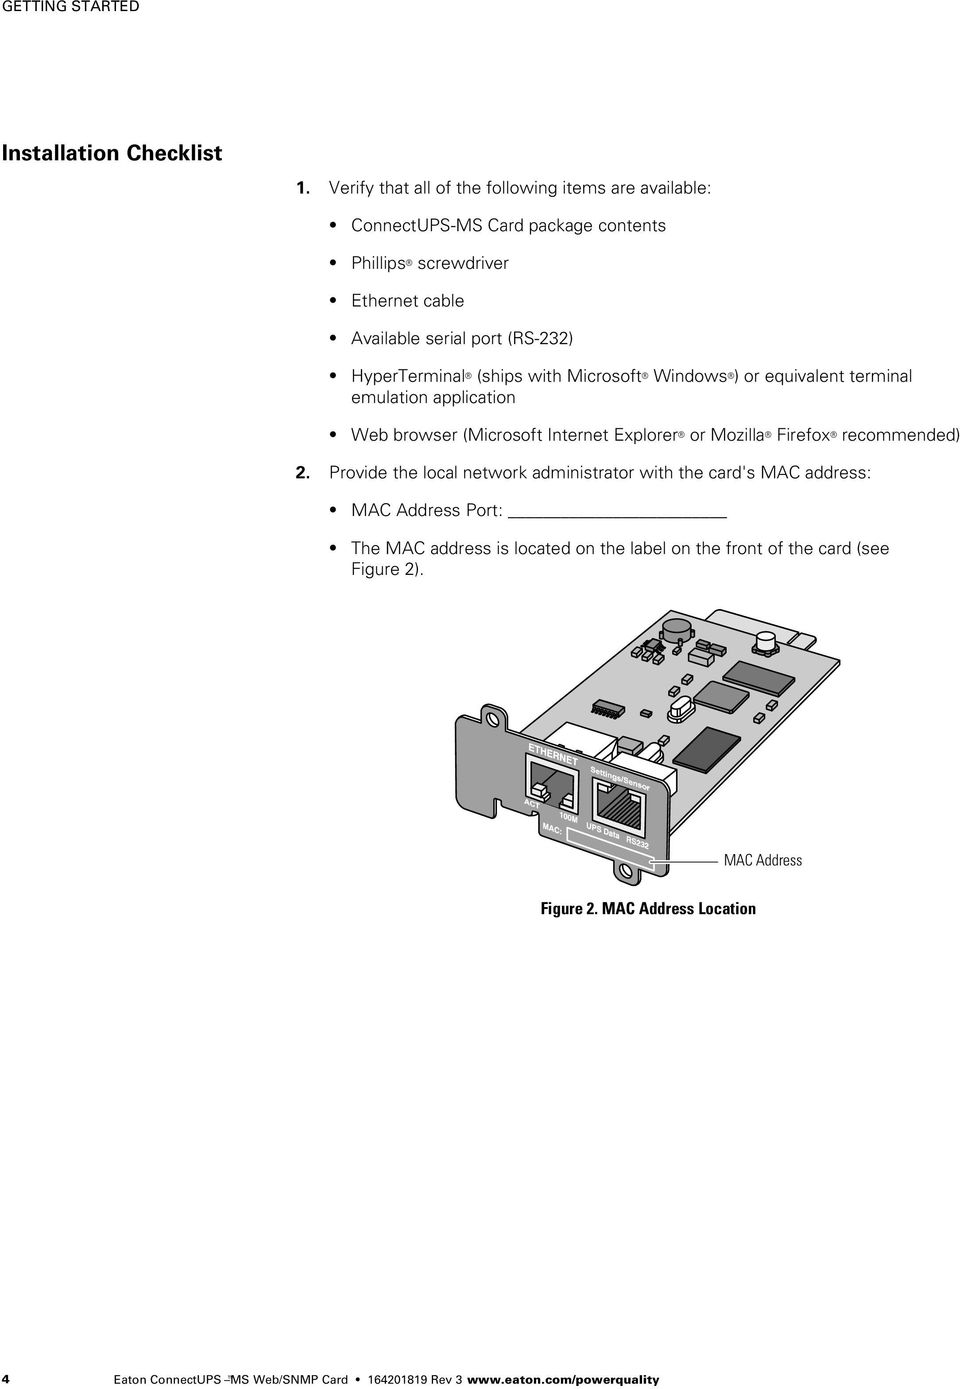 Eaton Connectups Ms Web Snmp Card Users Guide Pdf Wiring Diagram Hyperterminal Ships With Microsoft Windows Or Equivalent Terminal Emulation Application Browser